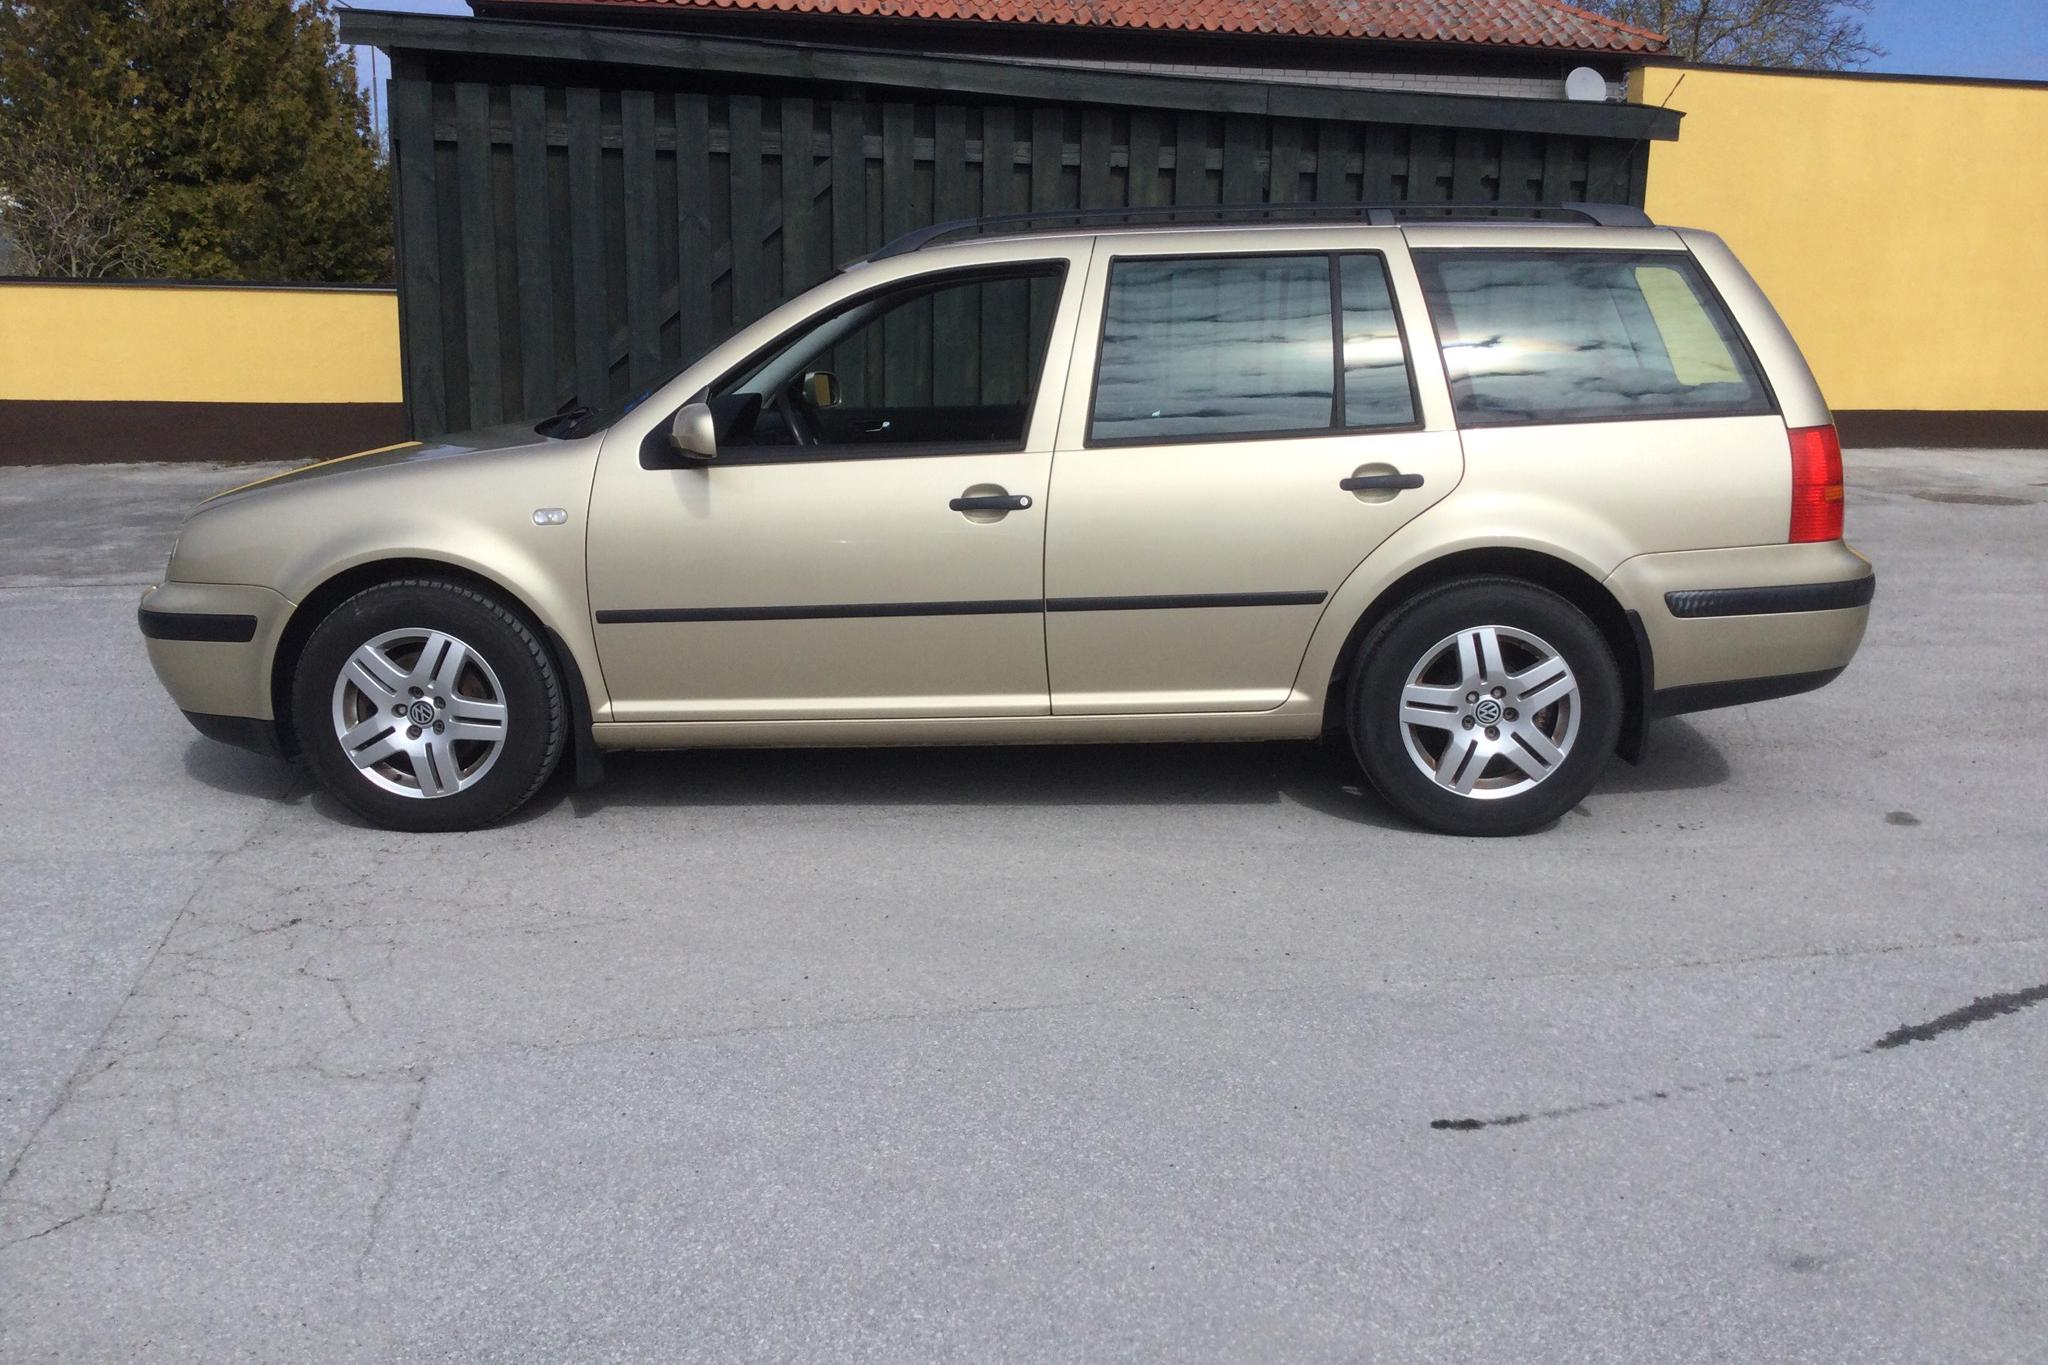 VW Golf IV 1.6 Variant (105hk) - 141 440 km - Manual - Light Brown - 2003